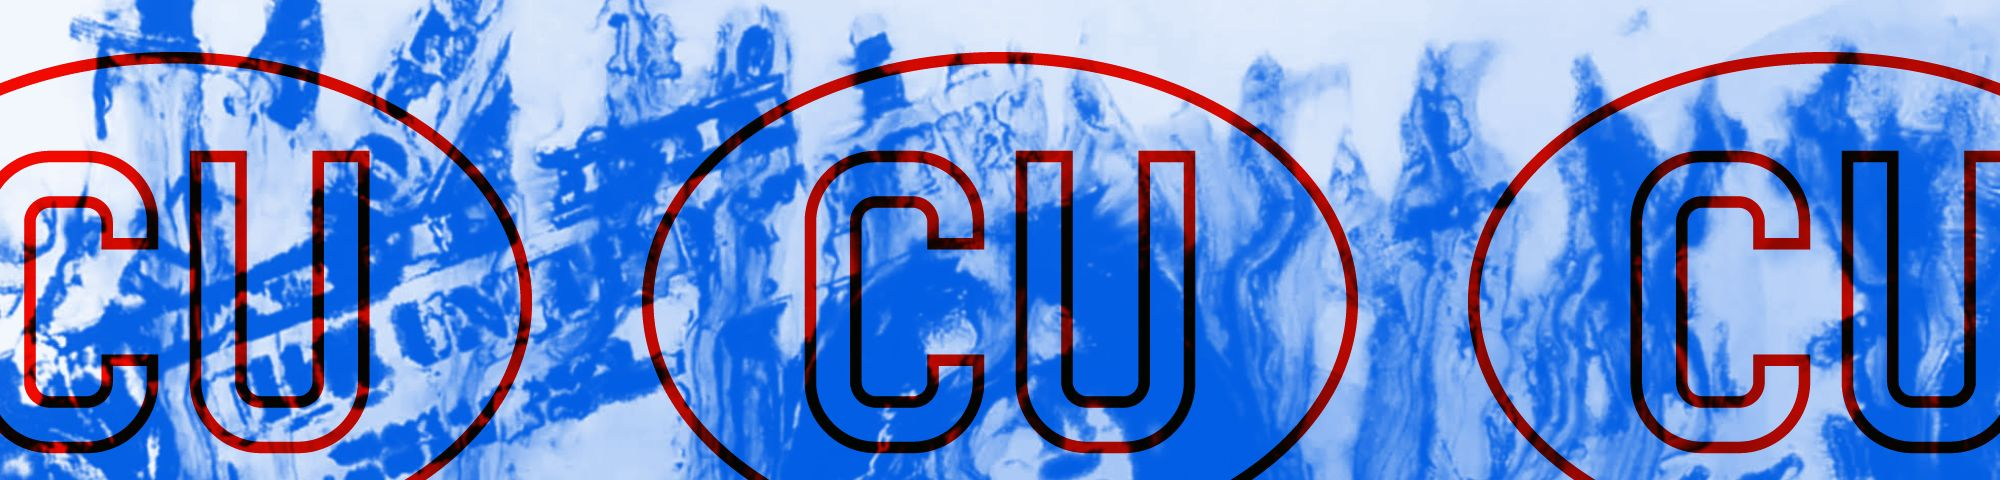 Abstract blue background which is overlaid with red ovals with CU written inside